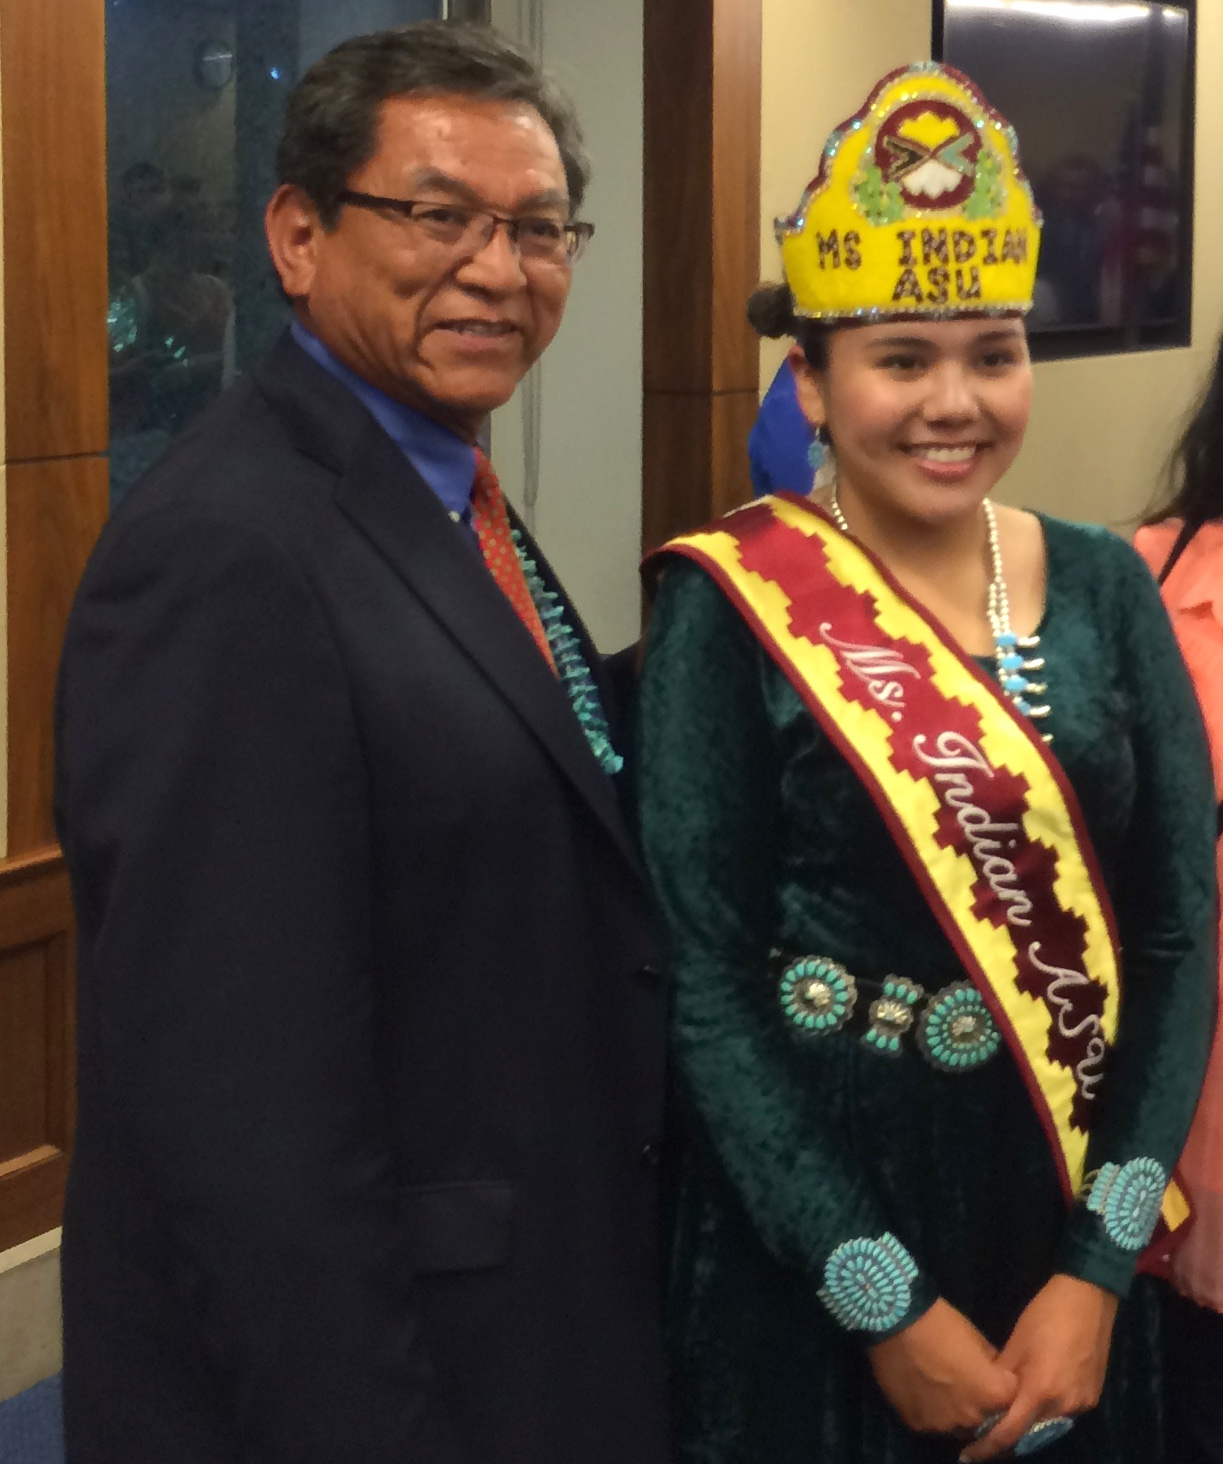 Large contingent represents Navajo Nation at White House event